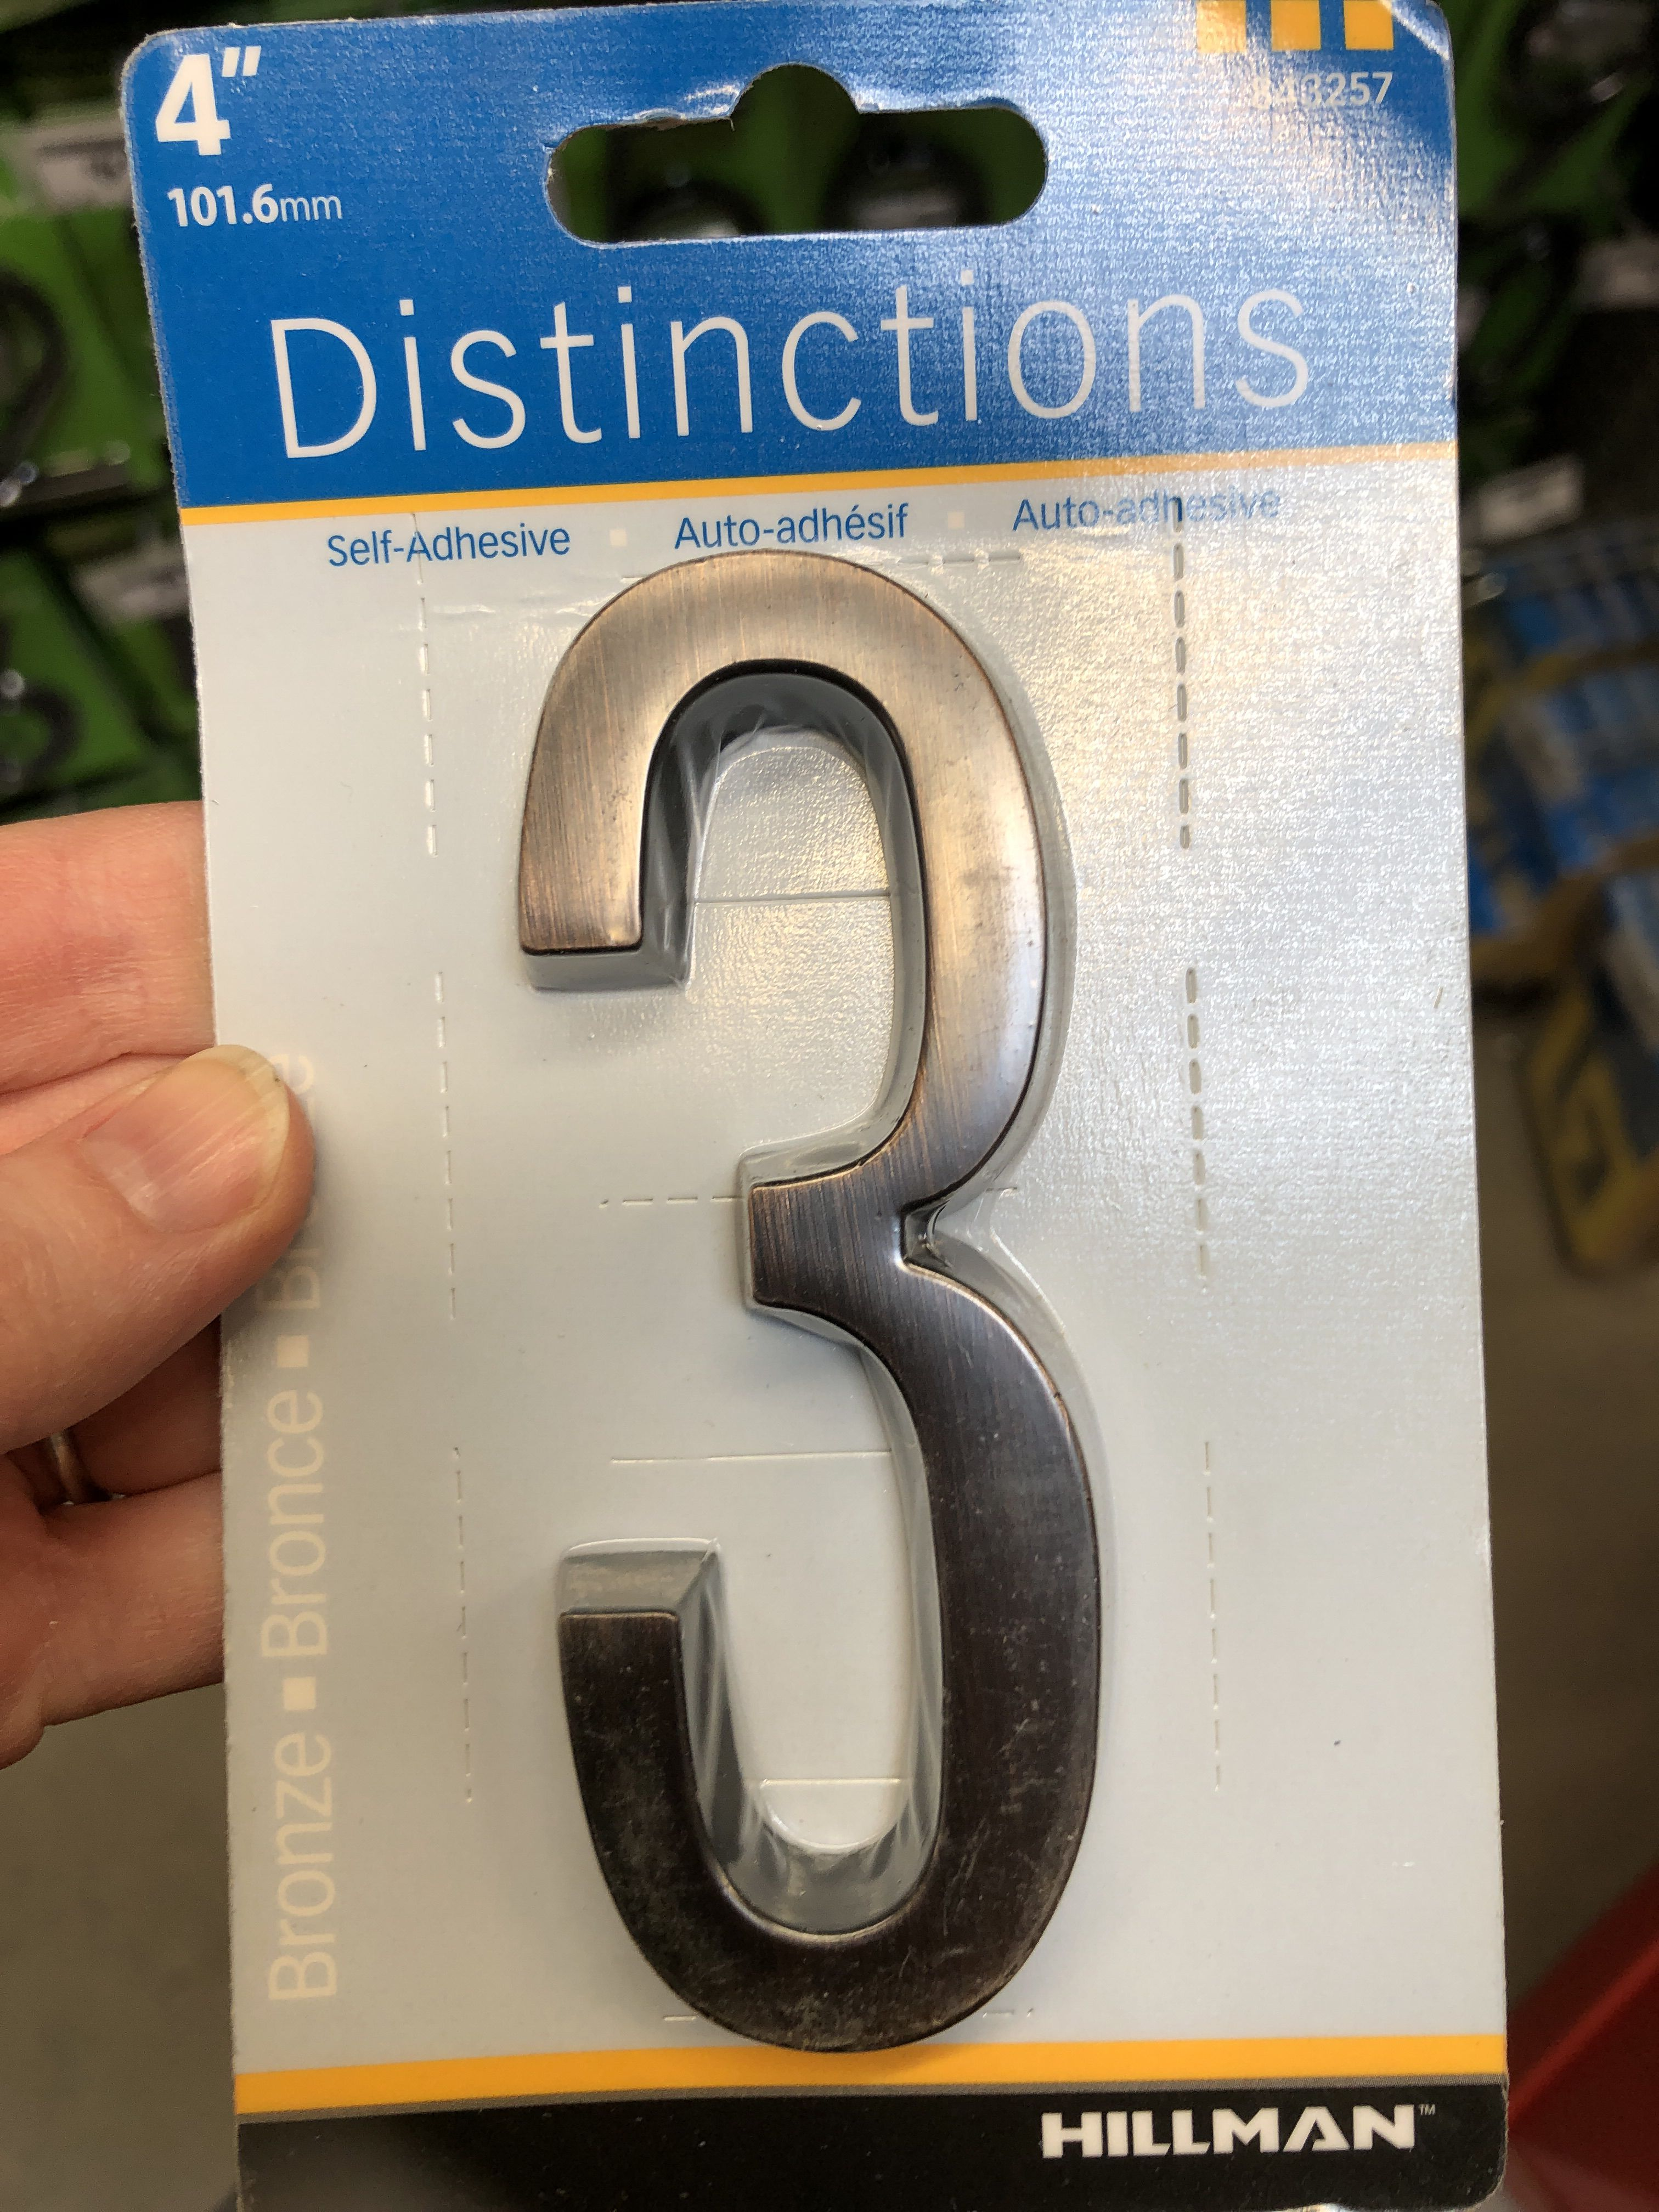 Home depot self adhesive house numbers only 4 though